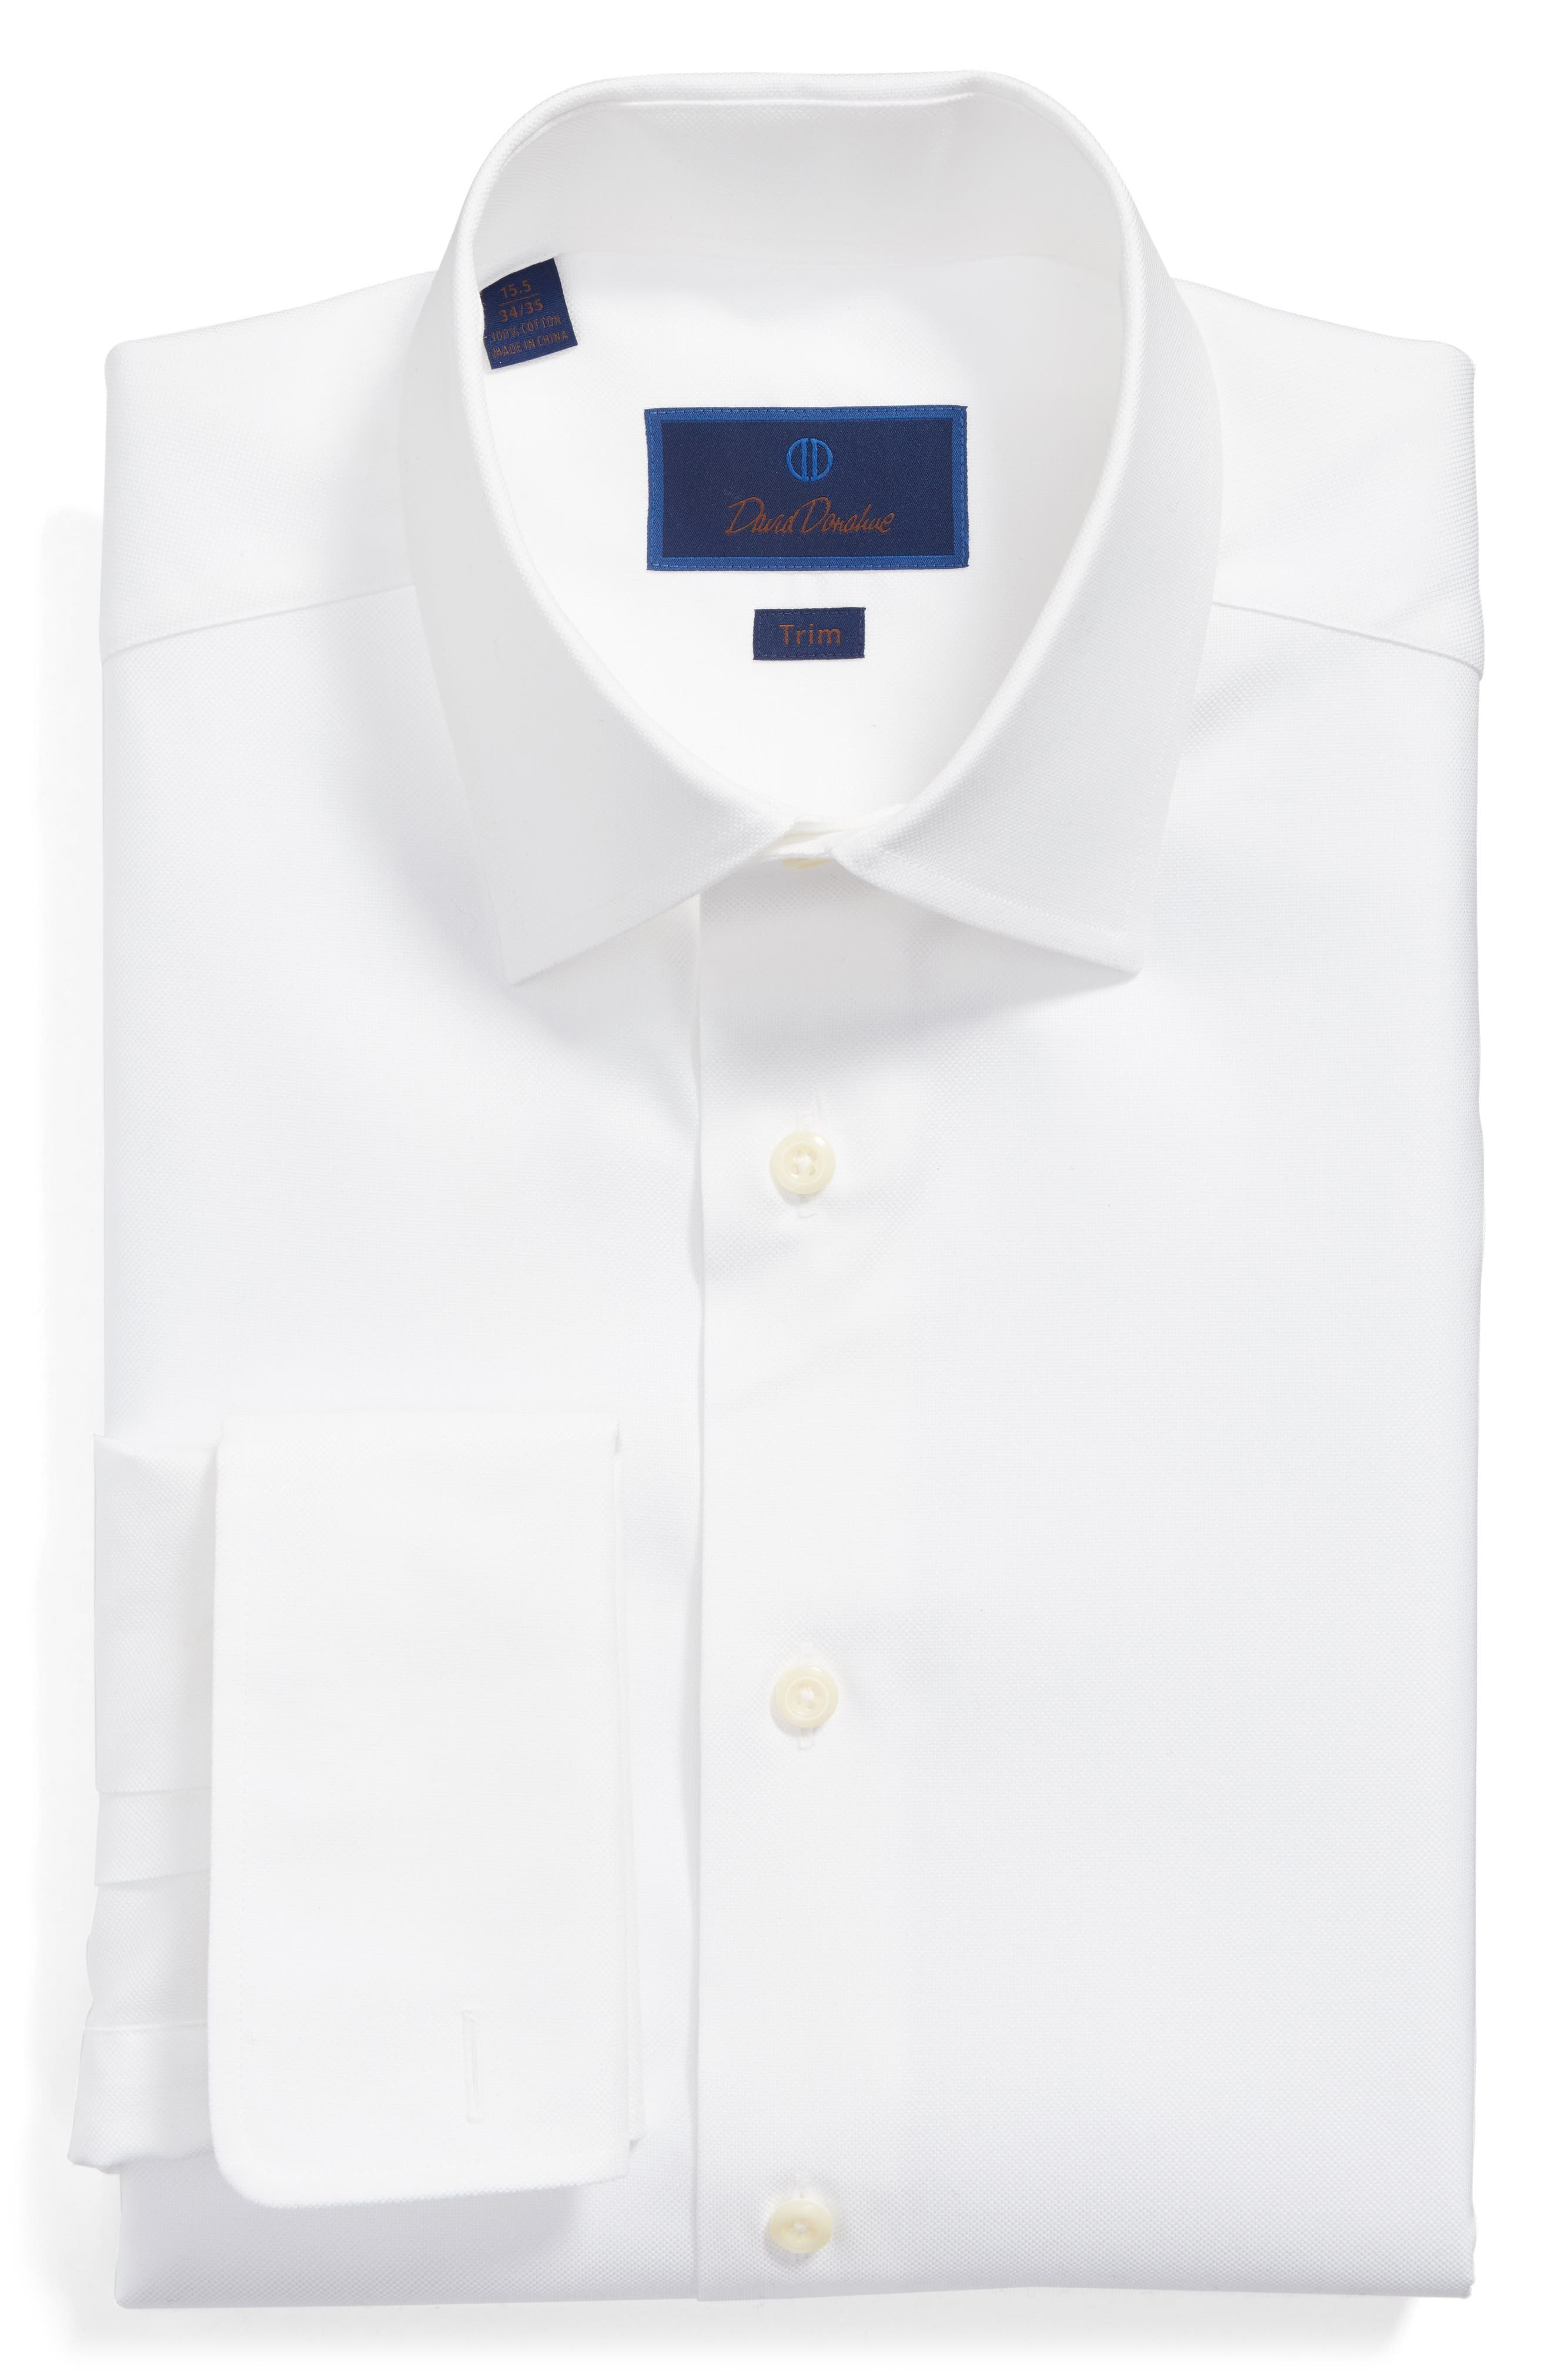 Alternate Image 1 Selected - David Donahue Trim Fit Solid French Cuff Dress Shirt